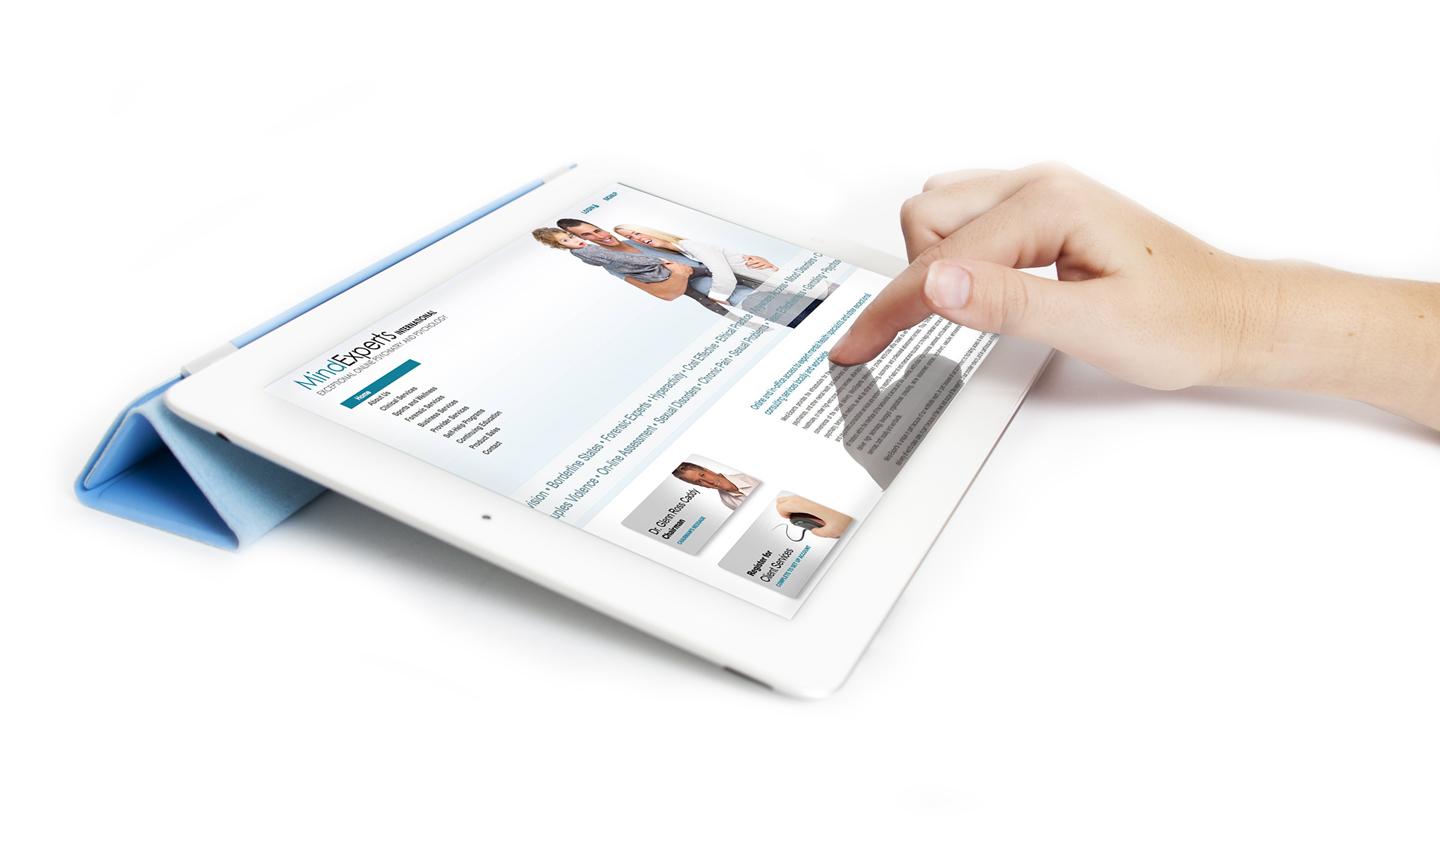 Responsive User Interface and Experience